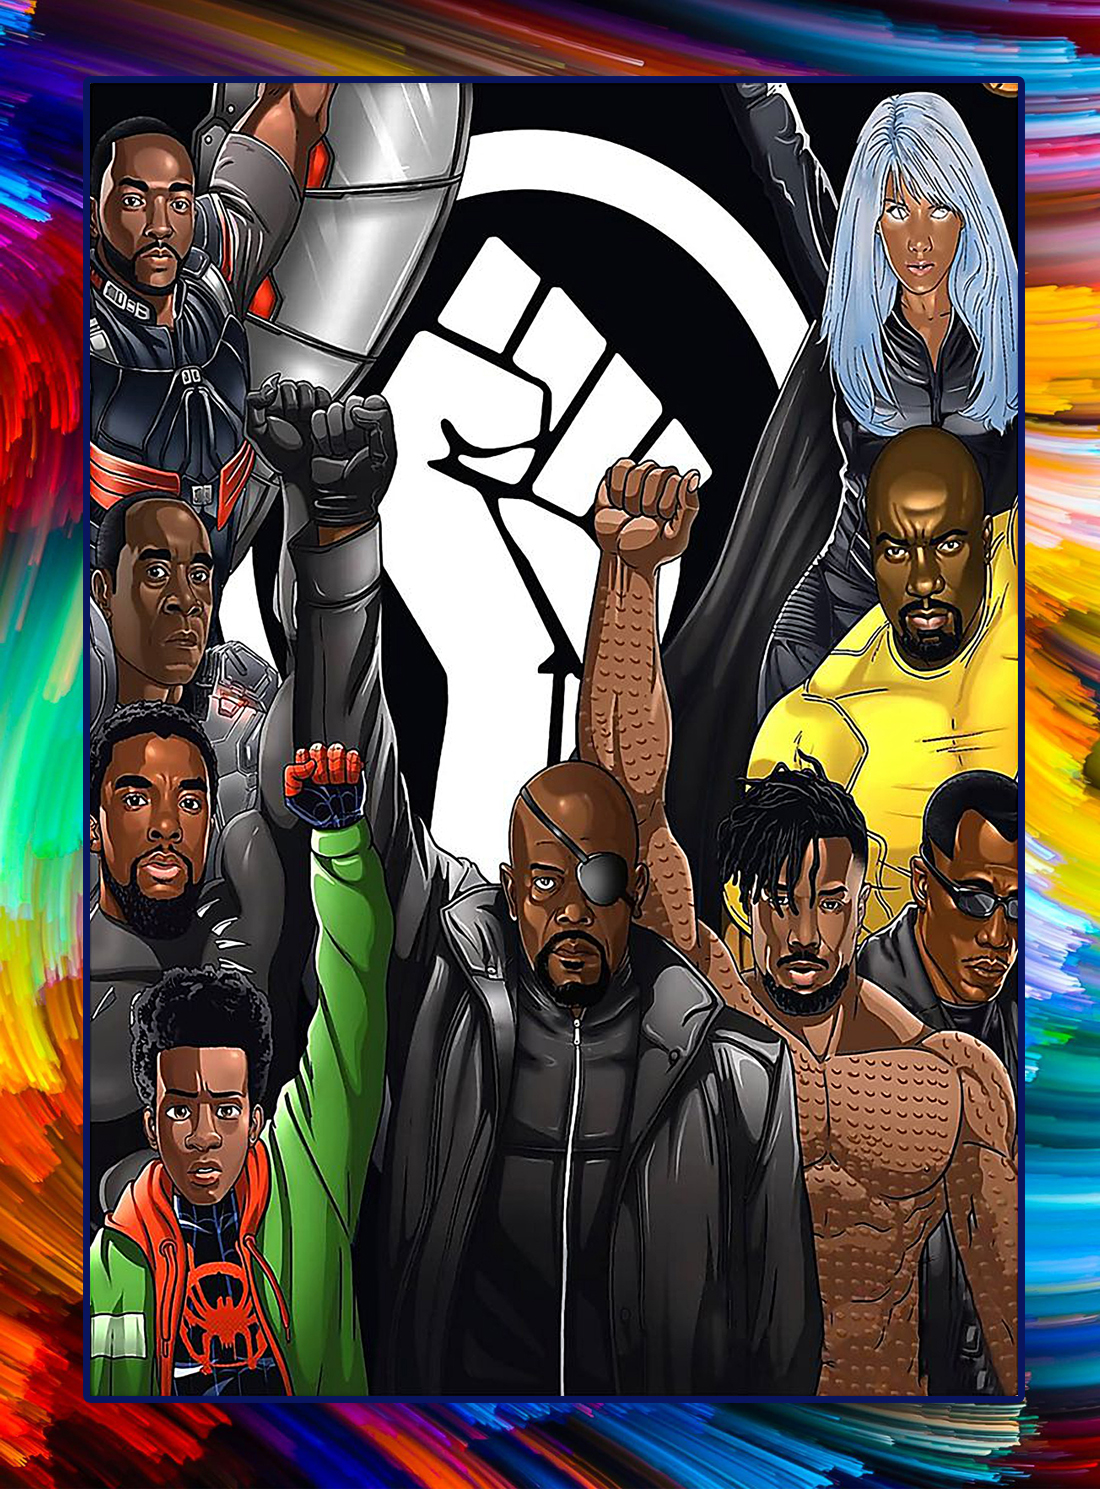 Black superheroes raised fist black power poster - A4